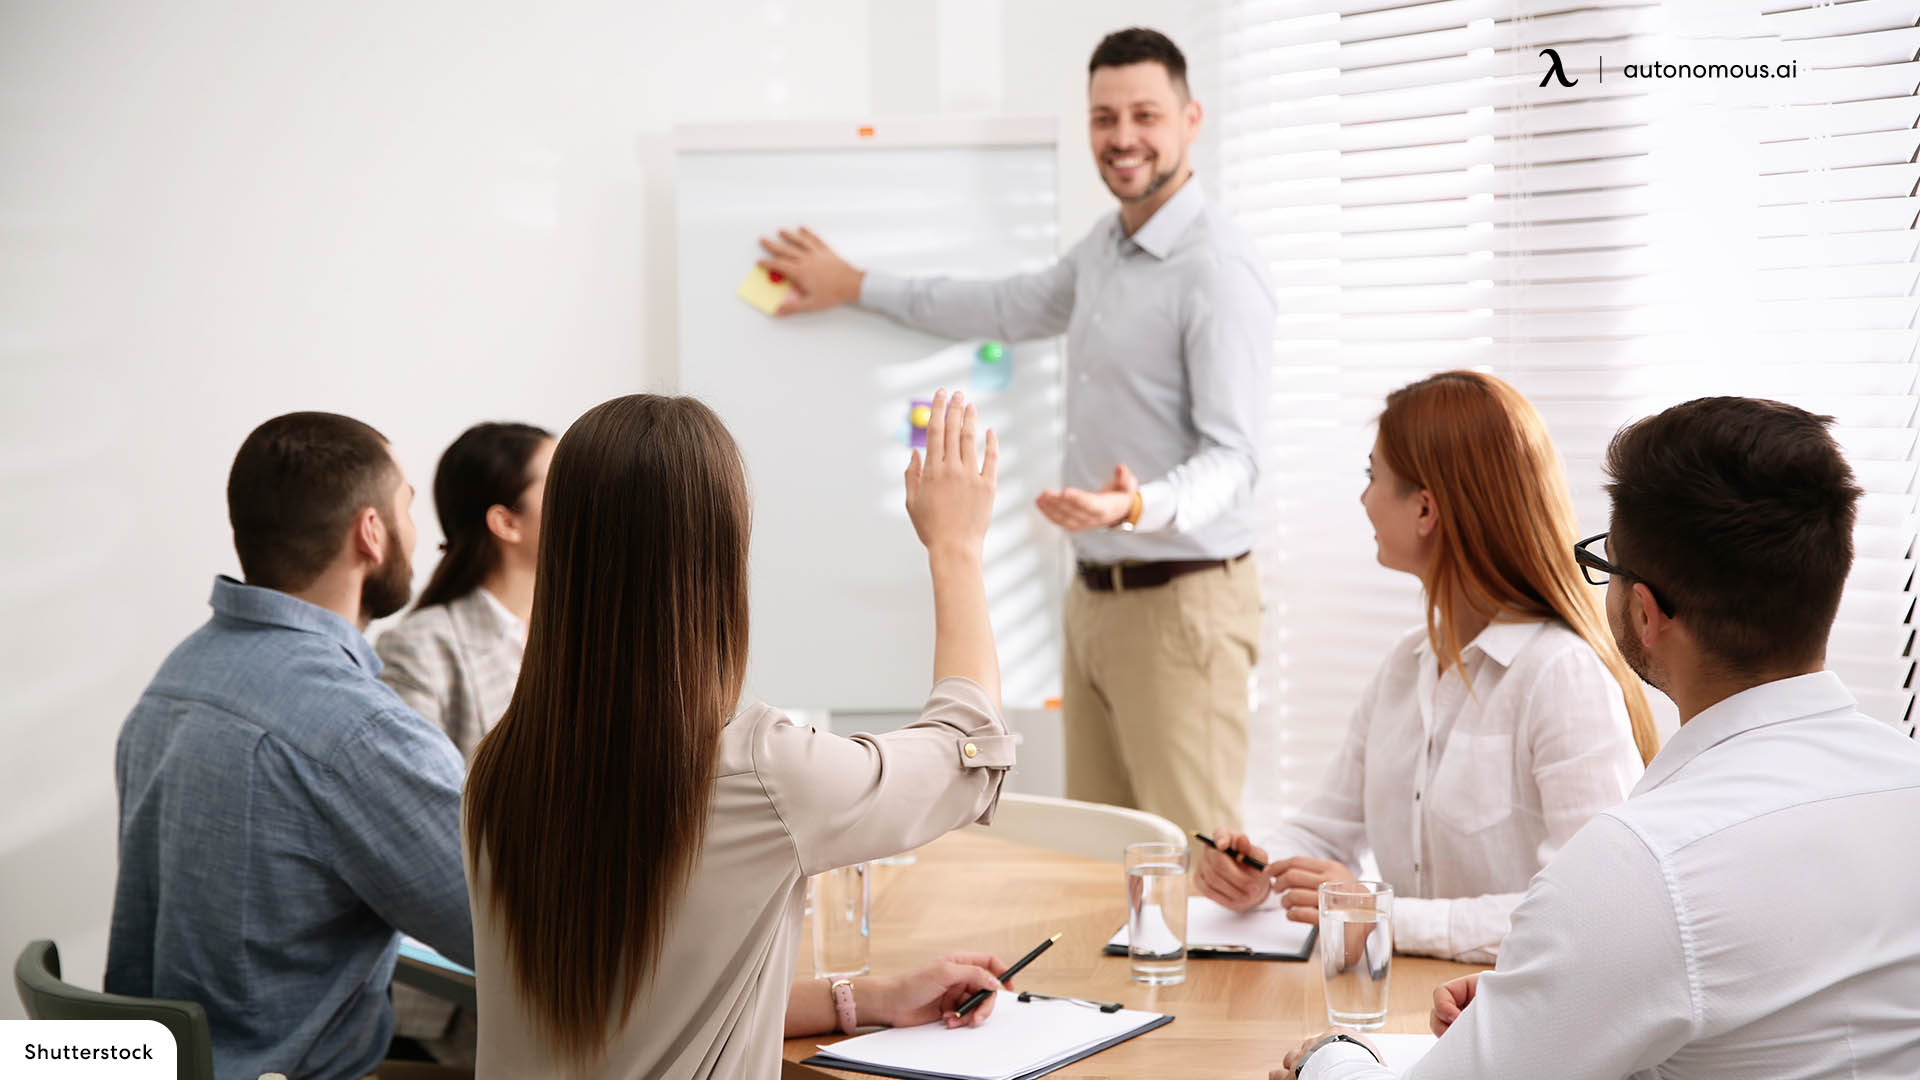 Interactive whiteboard tools